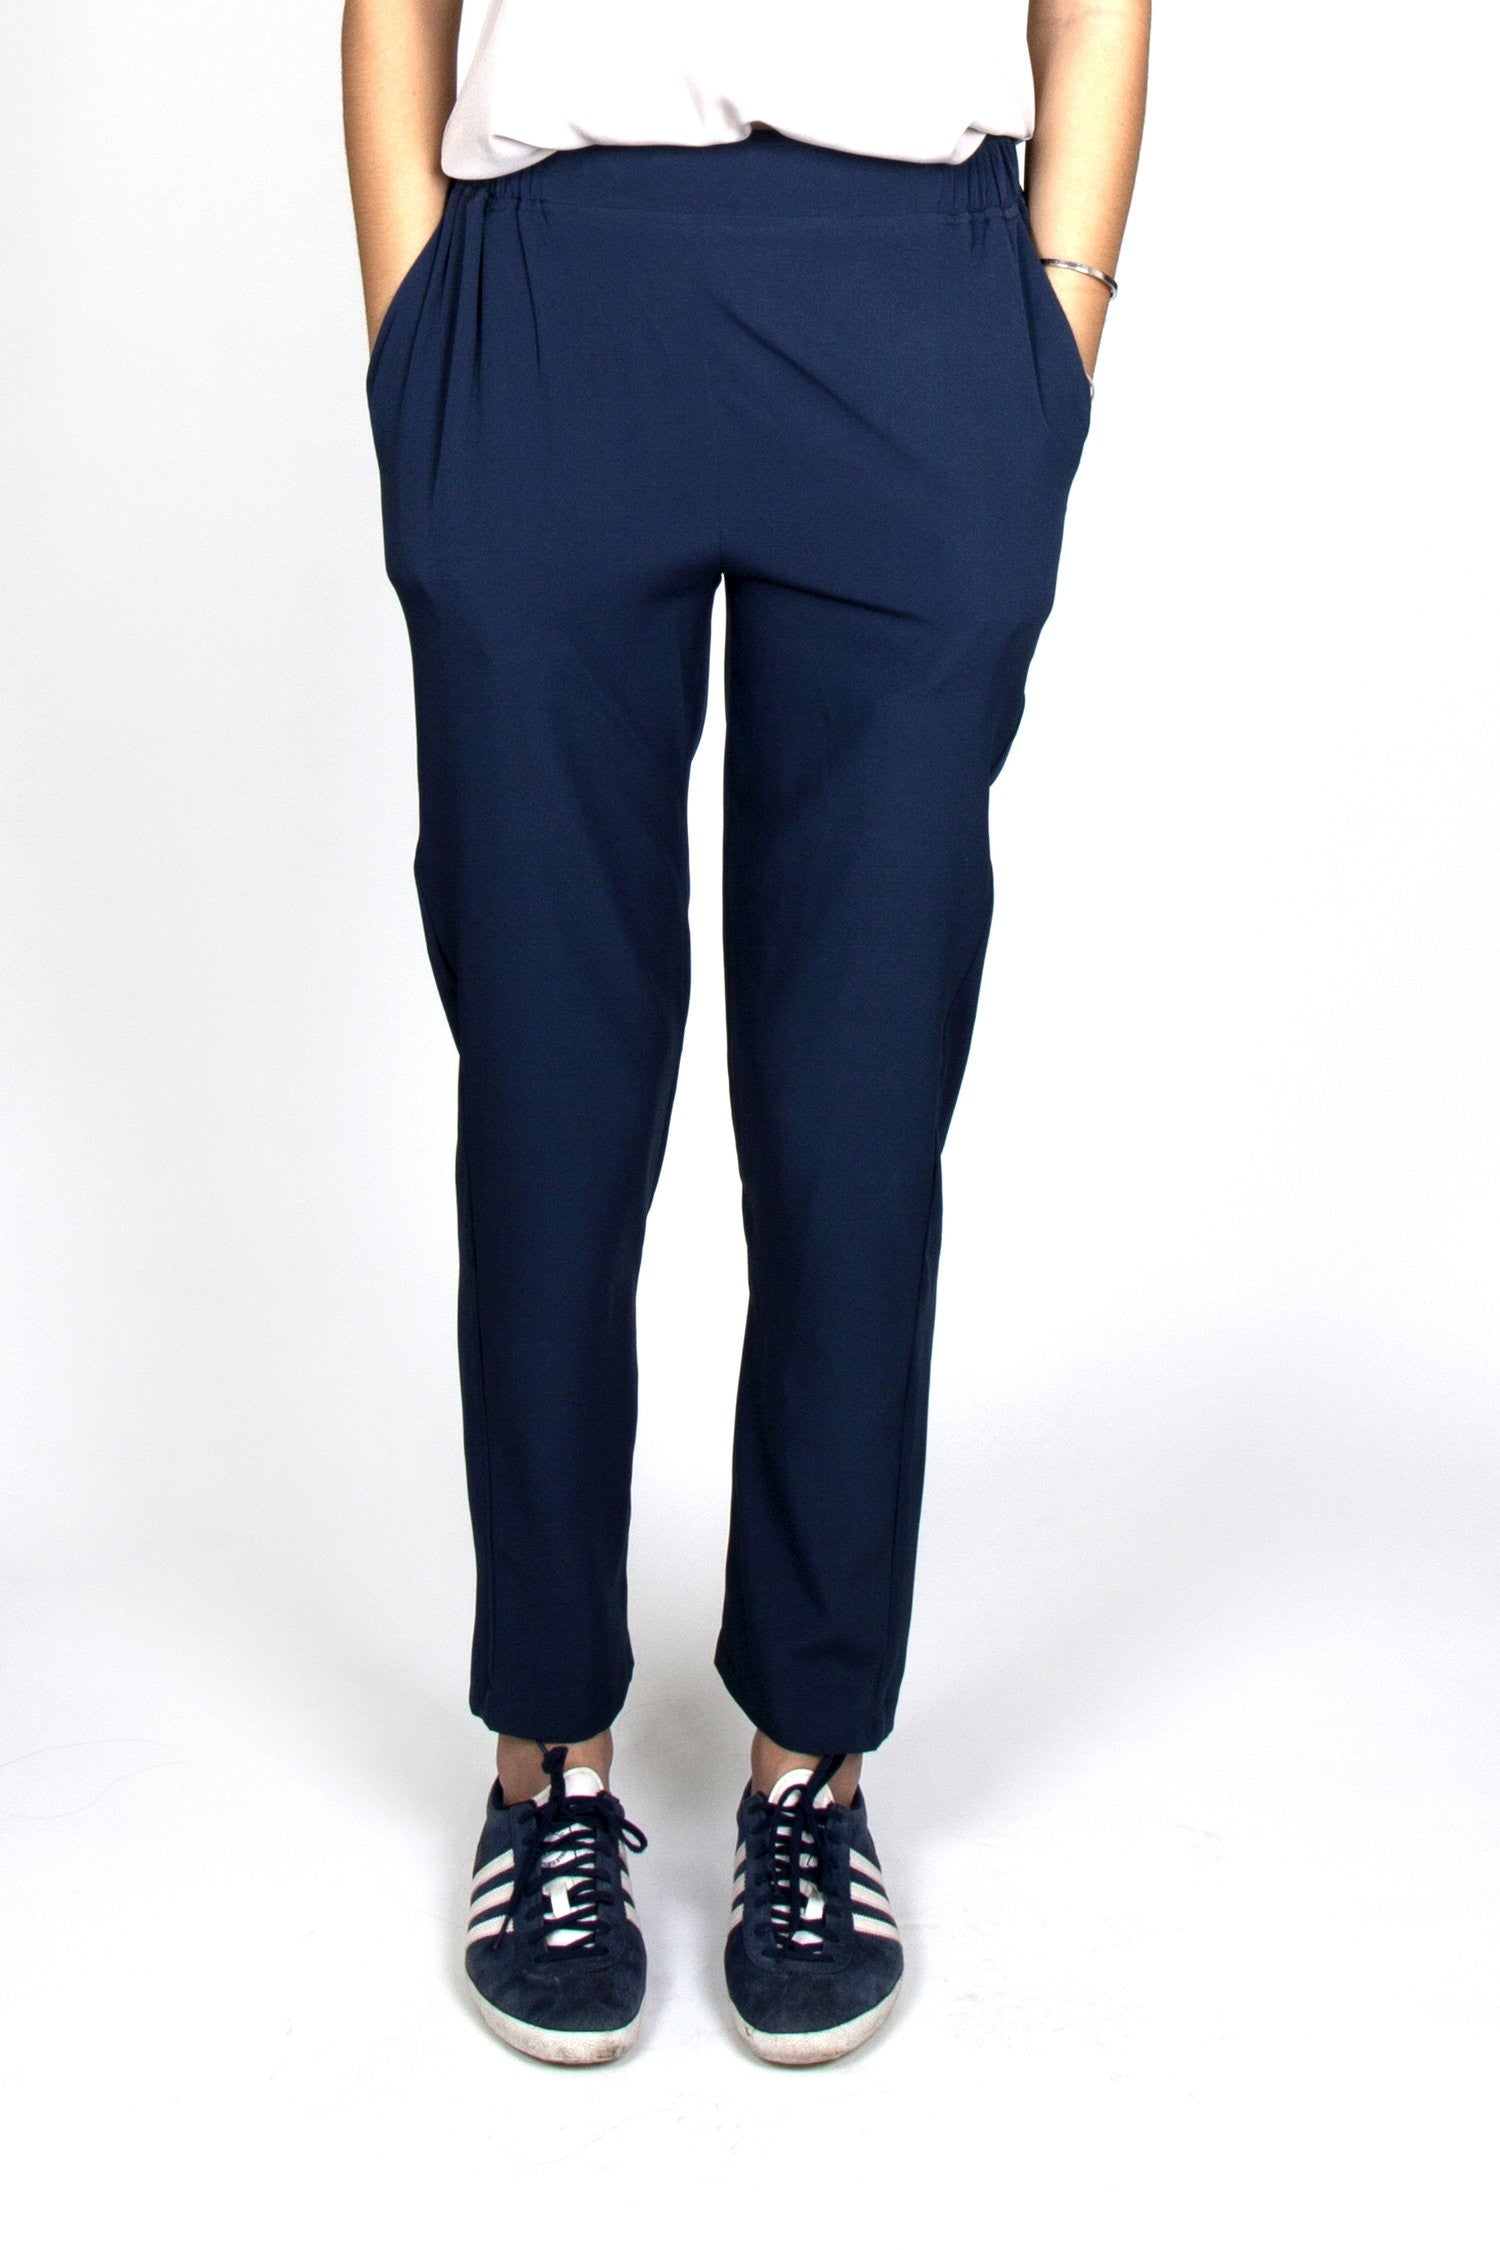 Mathilde Dark Blue Pants Capsule Collection By Juliette - Pants Capsule Collection By Juliette